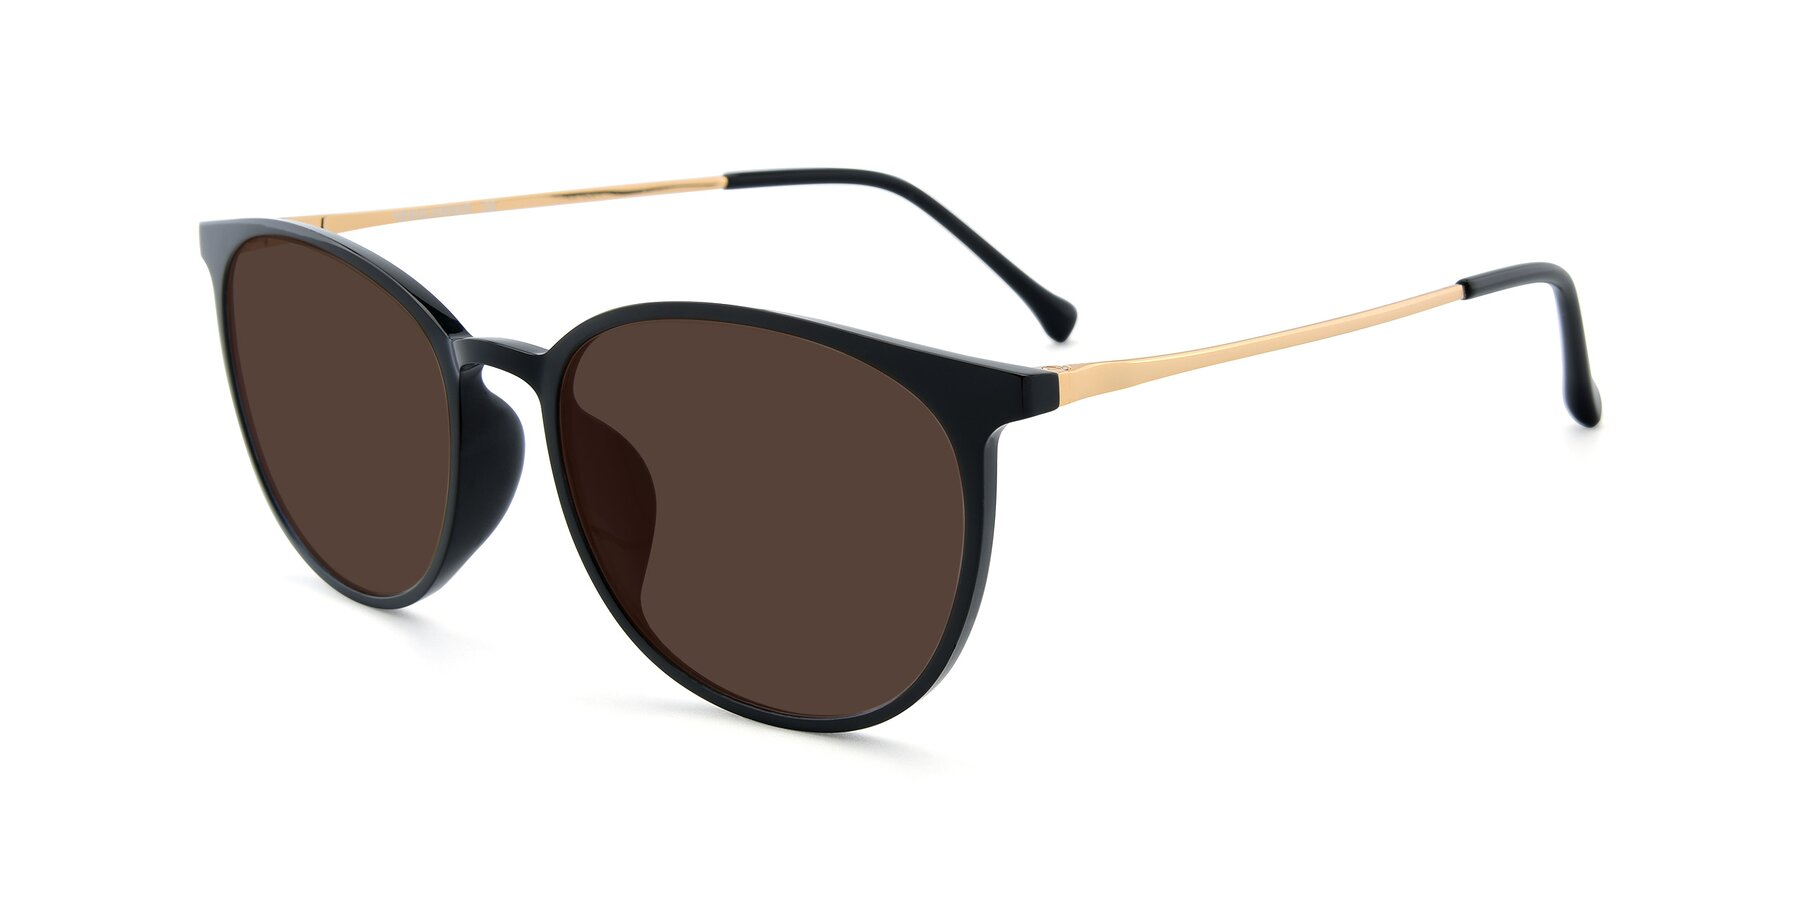 Angle of XC-6006 in Black-Gold with Brown Tinted Lenses